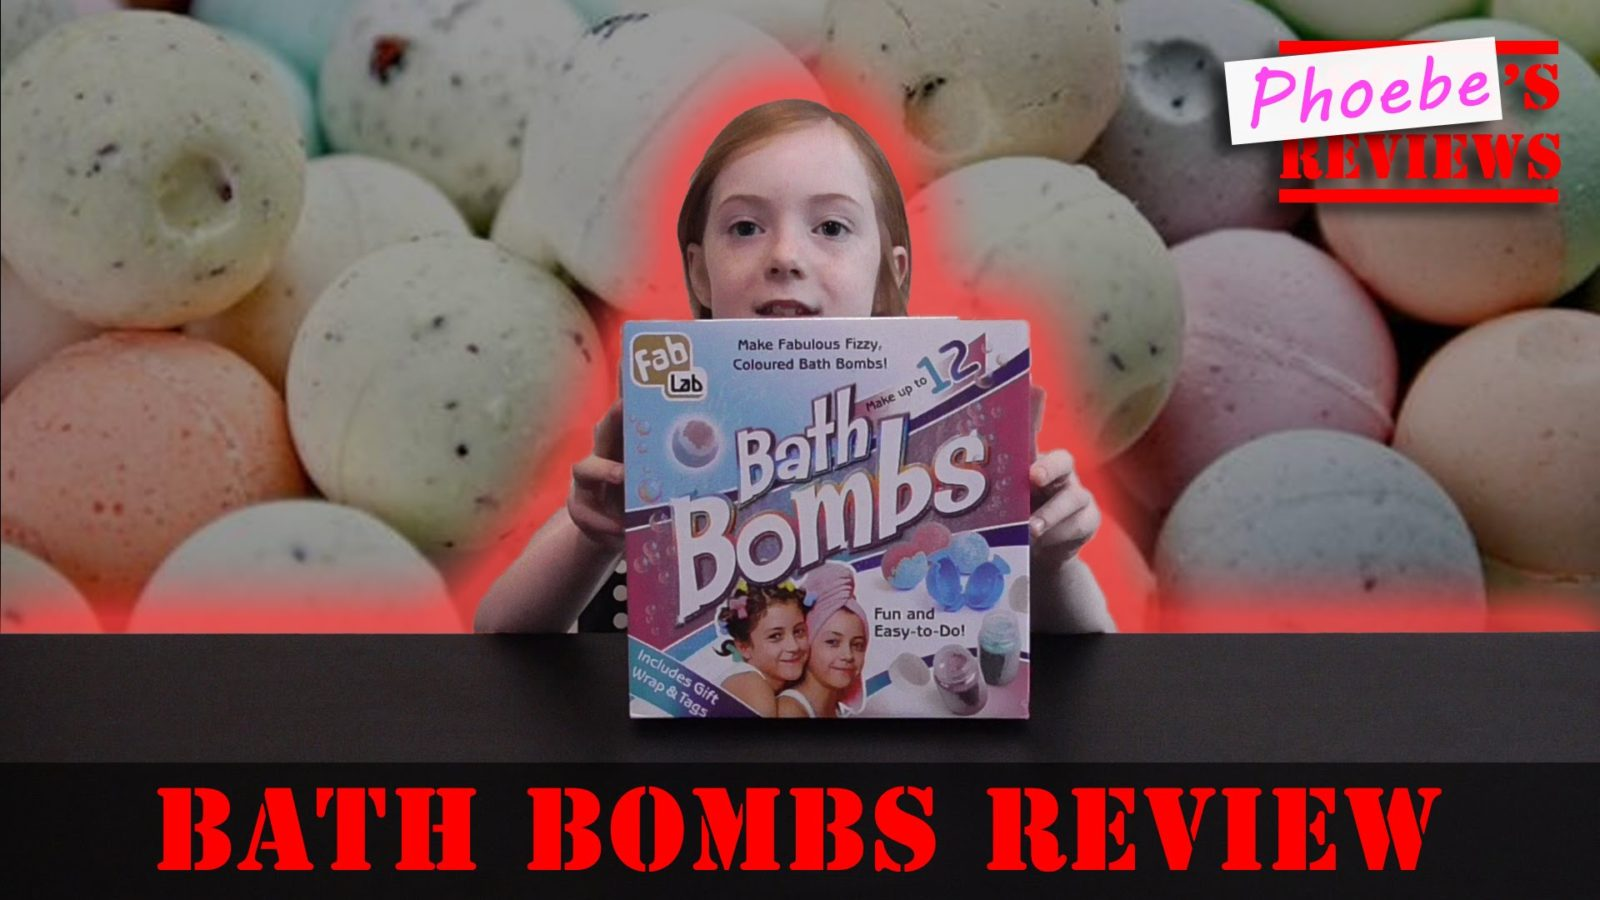 Fab Labs Bath Bombs Hands-On  Review